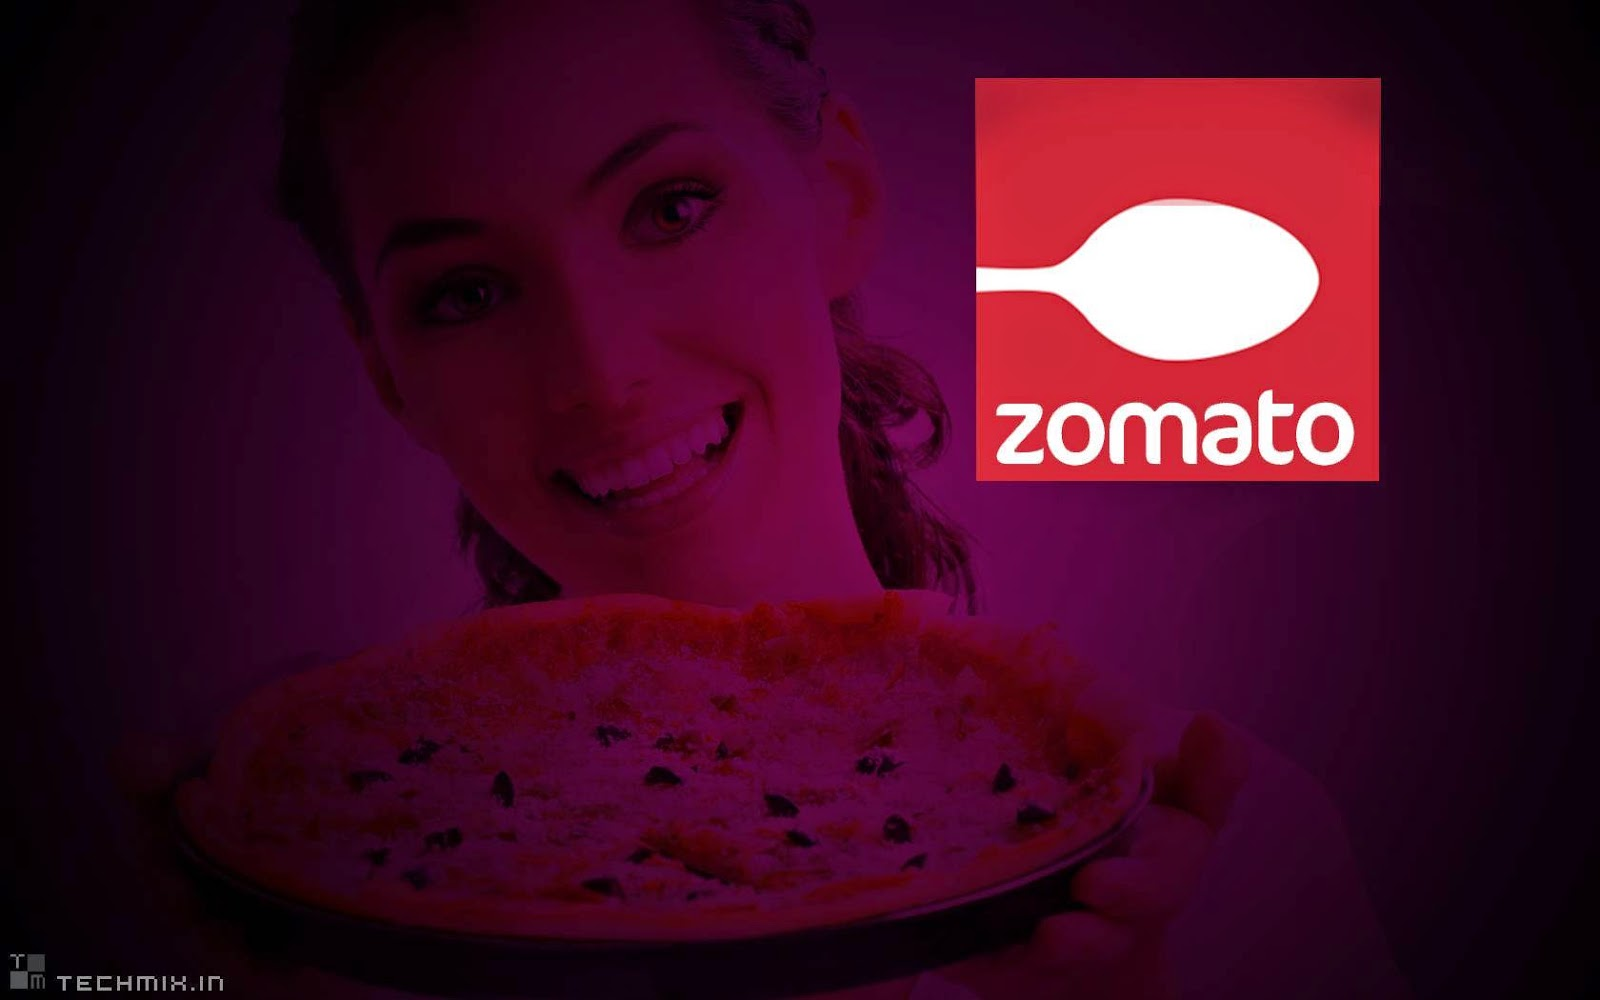 Zomato Updated on Windows Phone to v6.4.1.0 with Review Drafts and Promo Filter Features